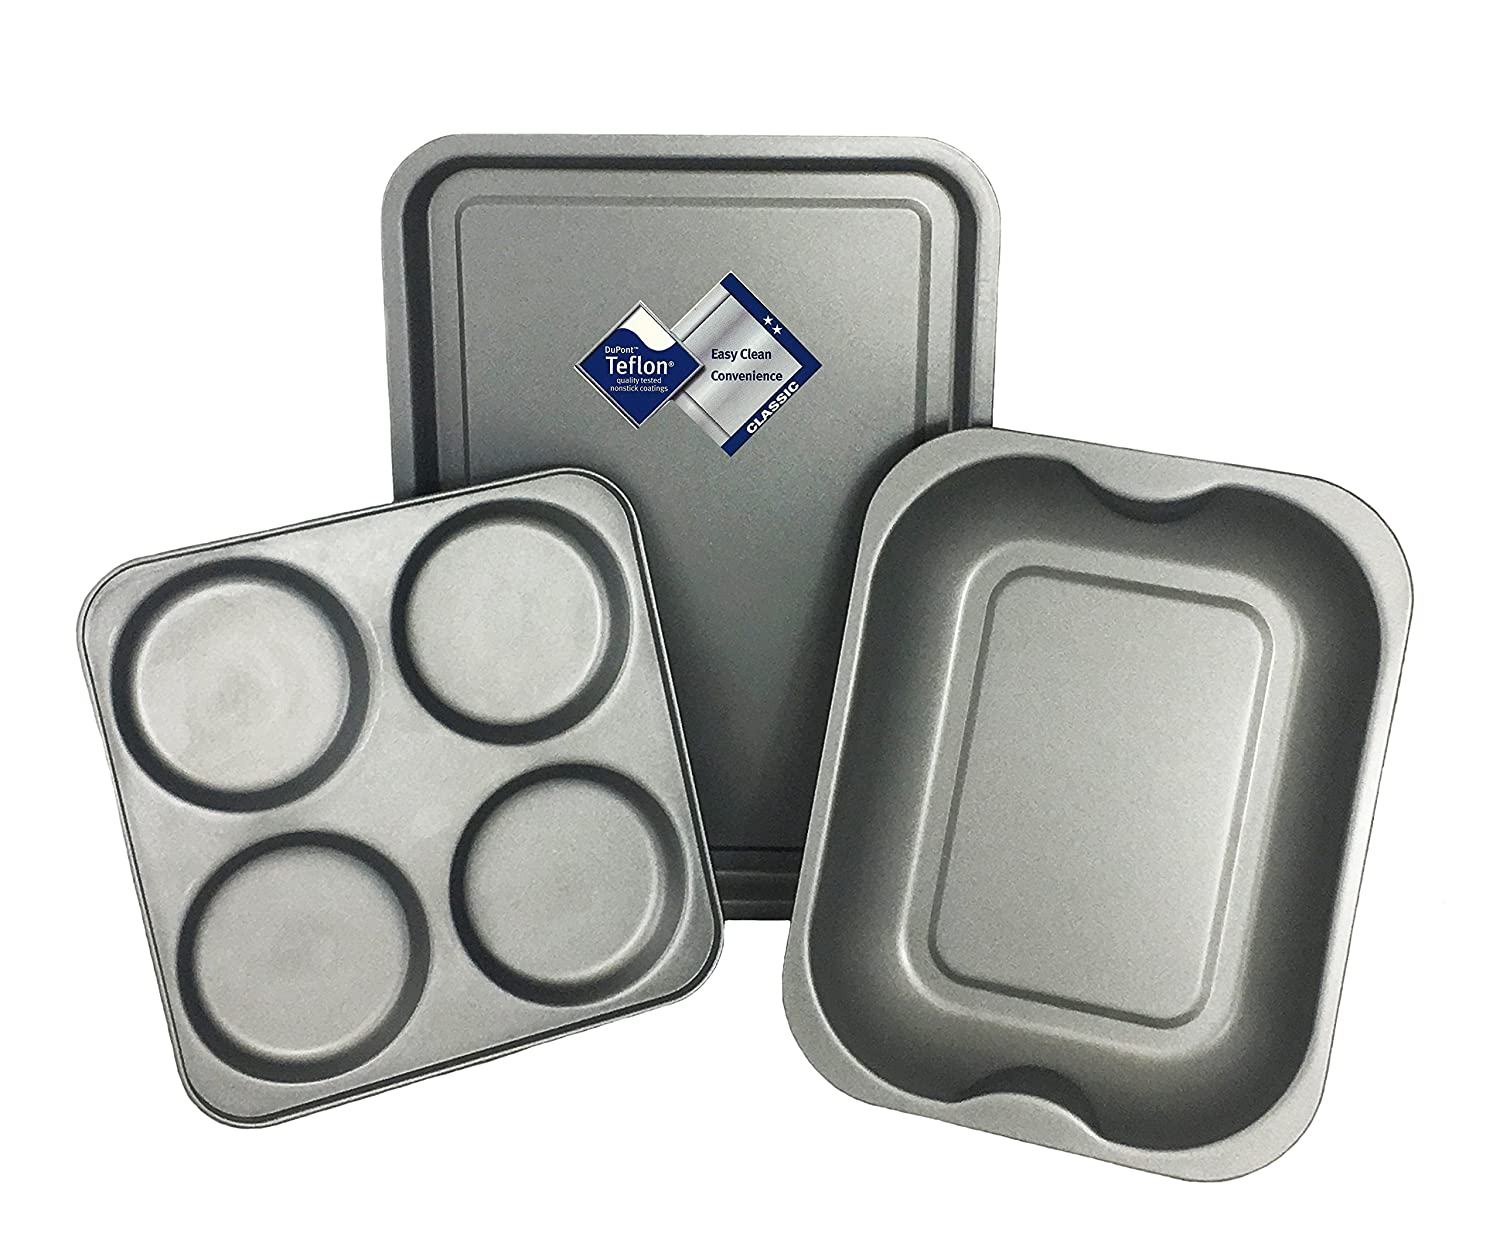 3 Piece Teflon Classic Non Stick Roasting Set (1 x Roasting Pan, 1 x Baking Tray & 1 x Yorkshire Pudding Tray) by Lets Cook Cookware